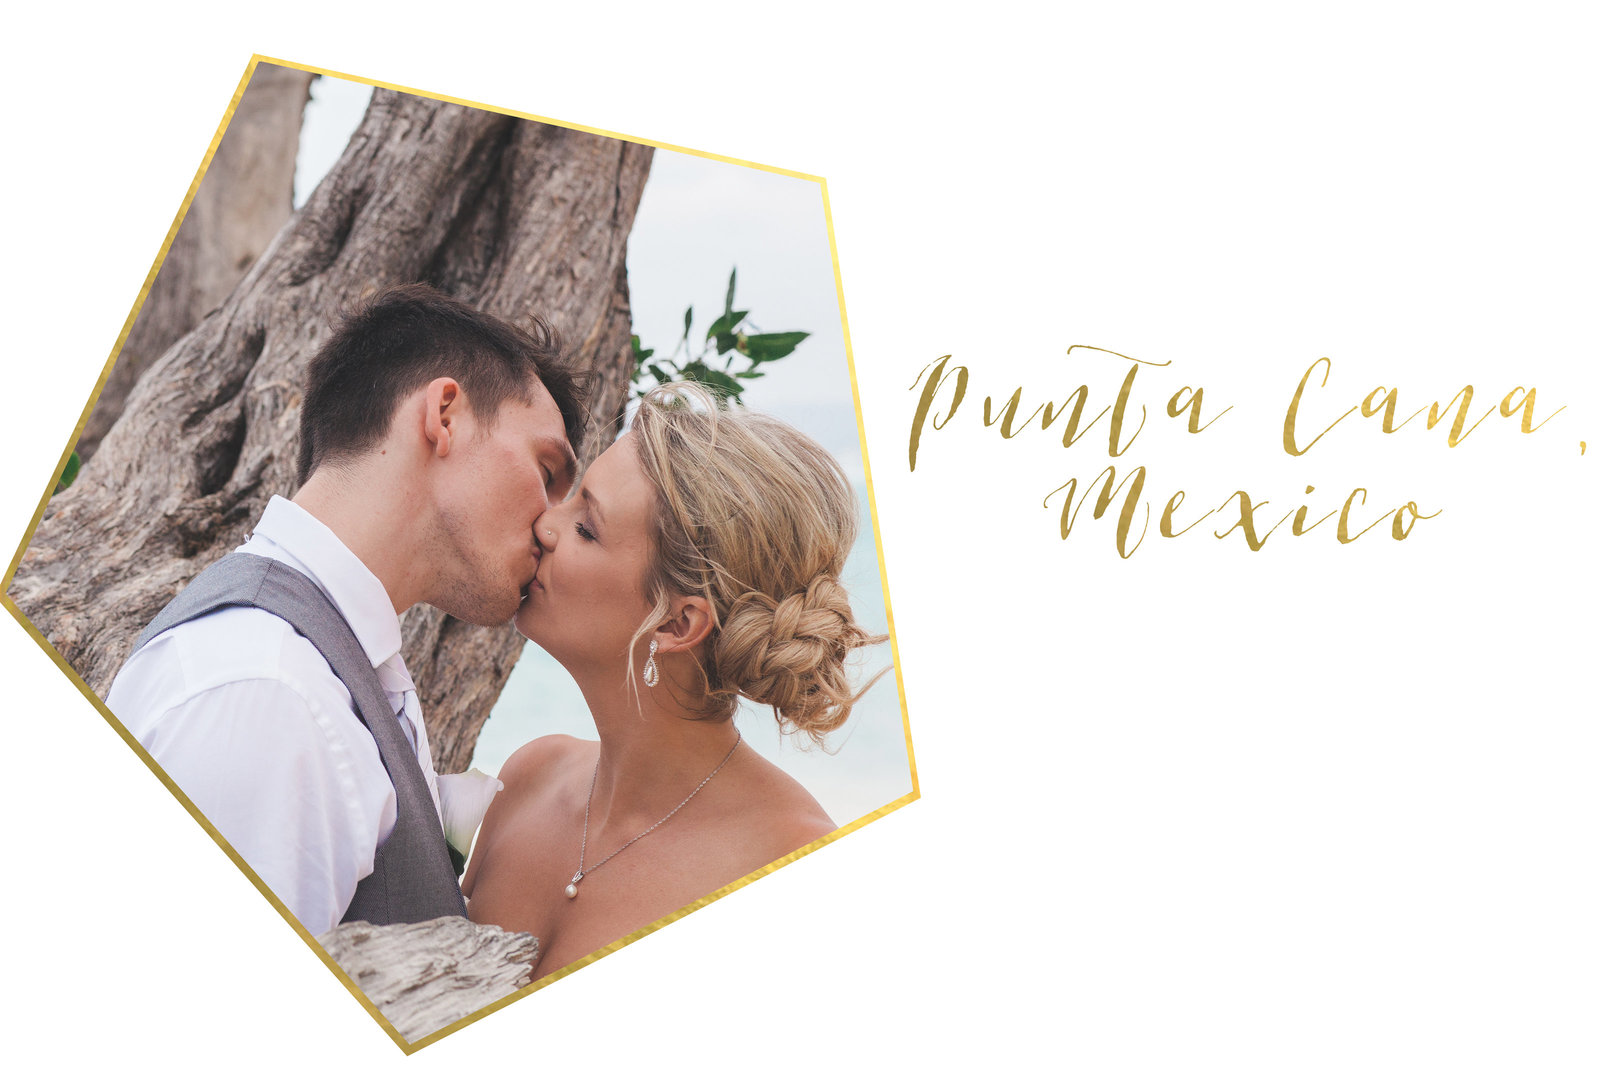 Punta.Cana.Mexico.destion.wedding.photography